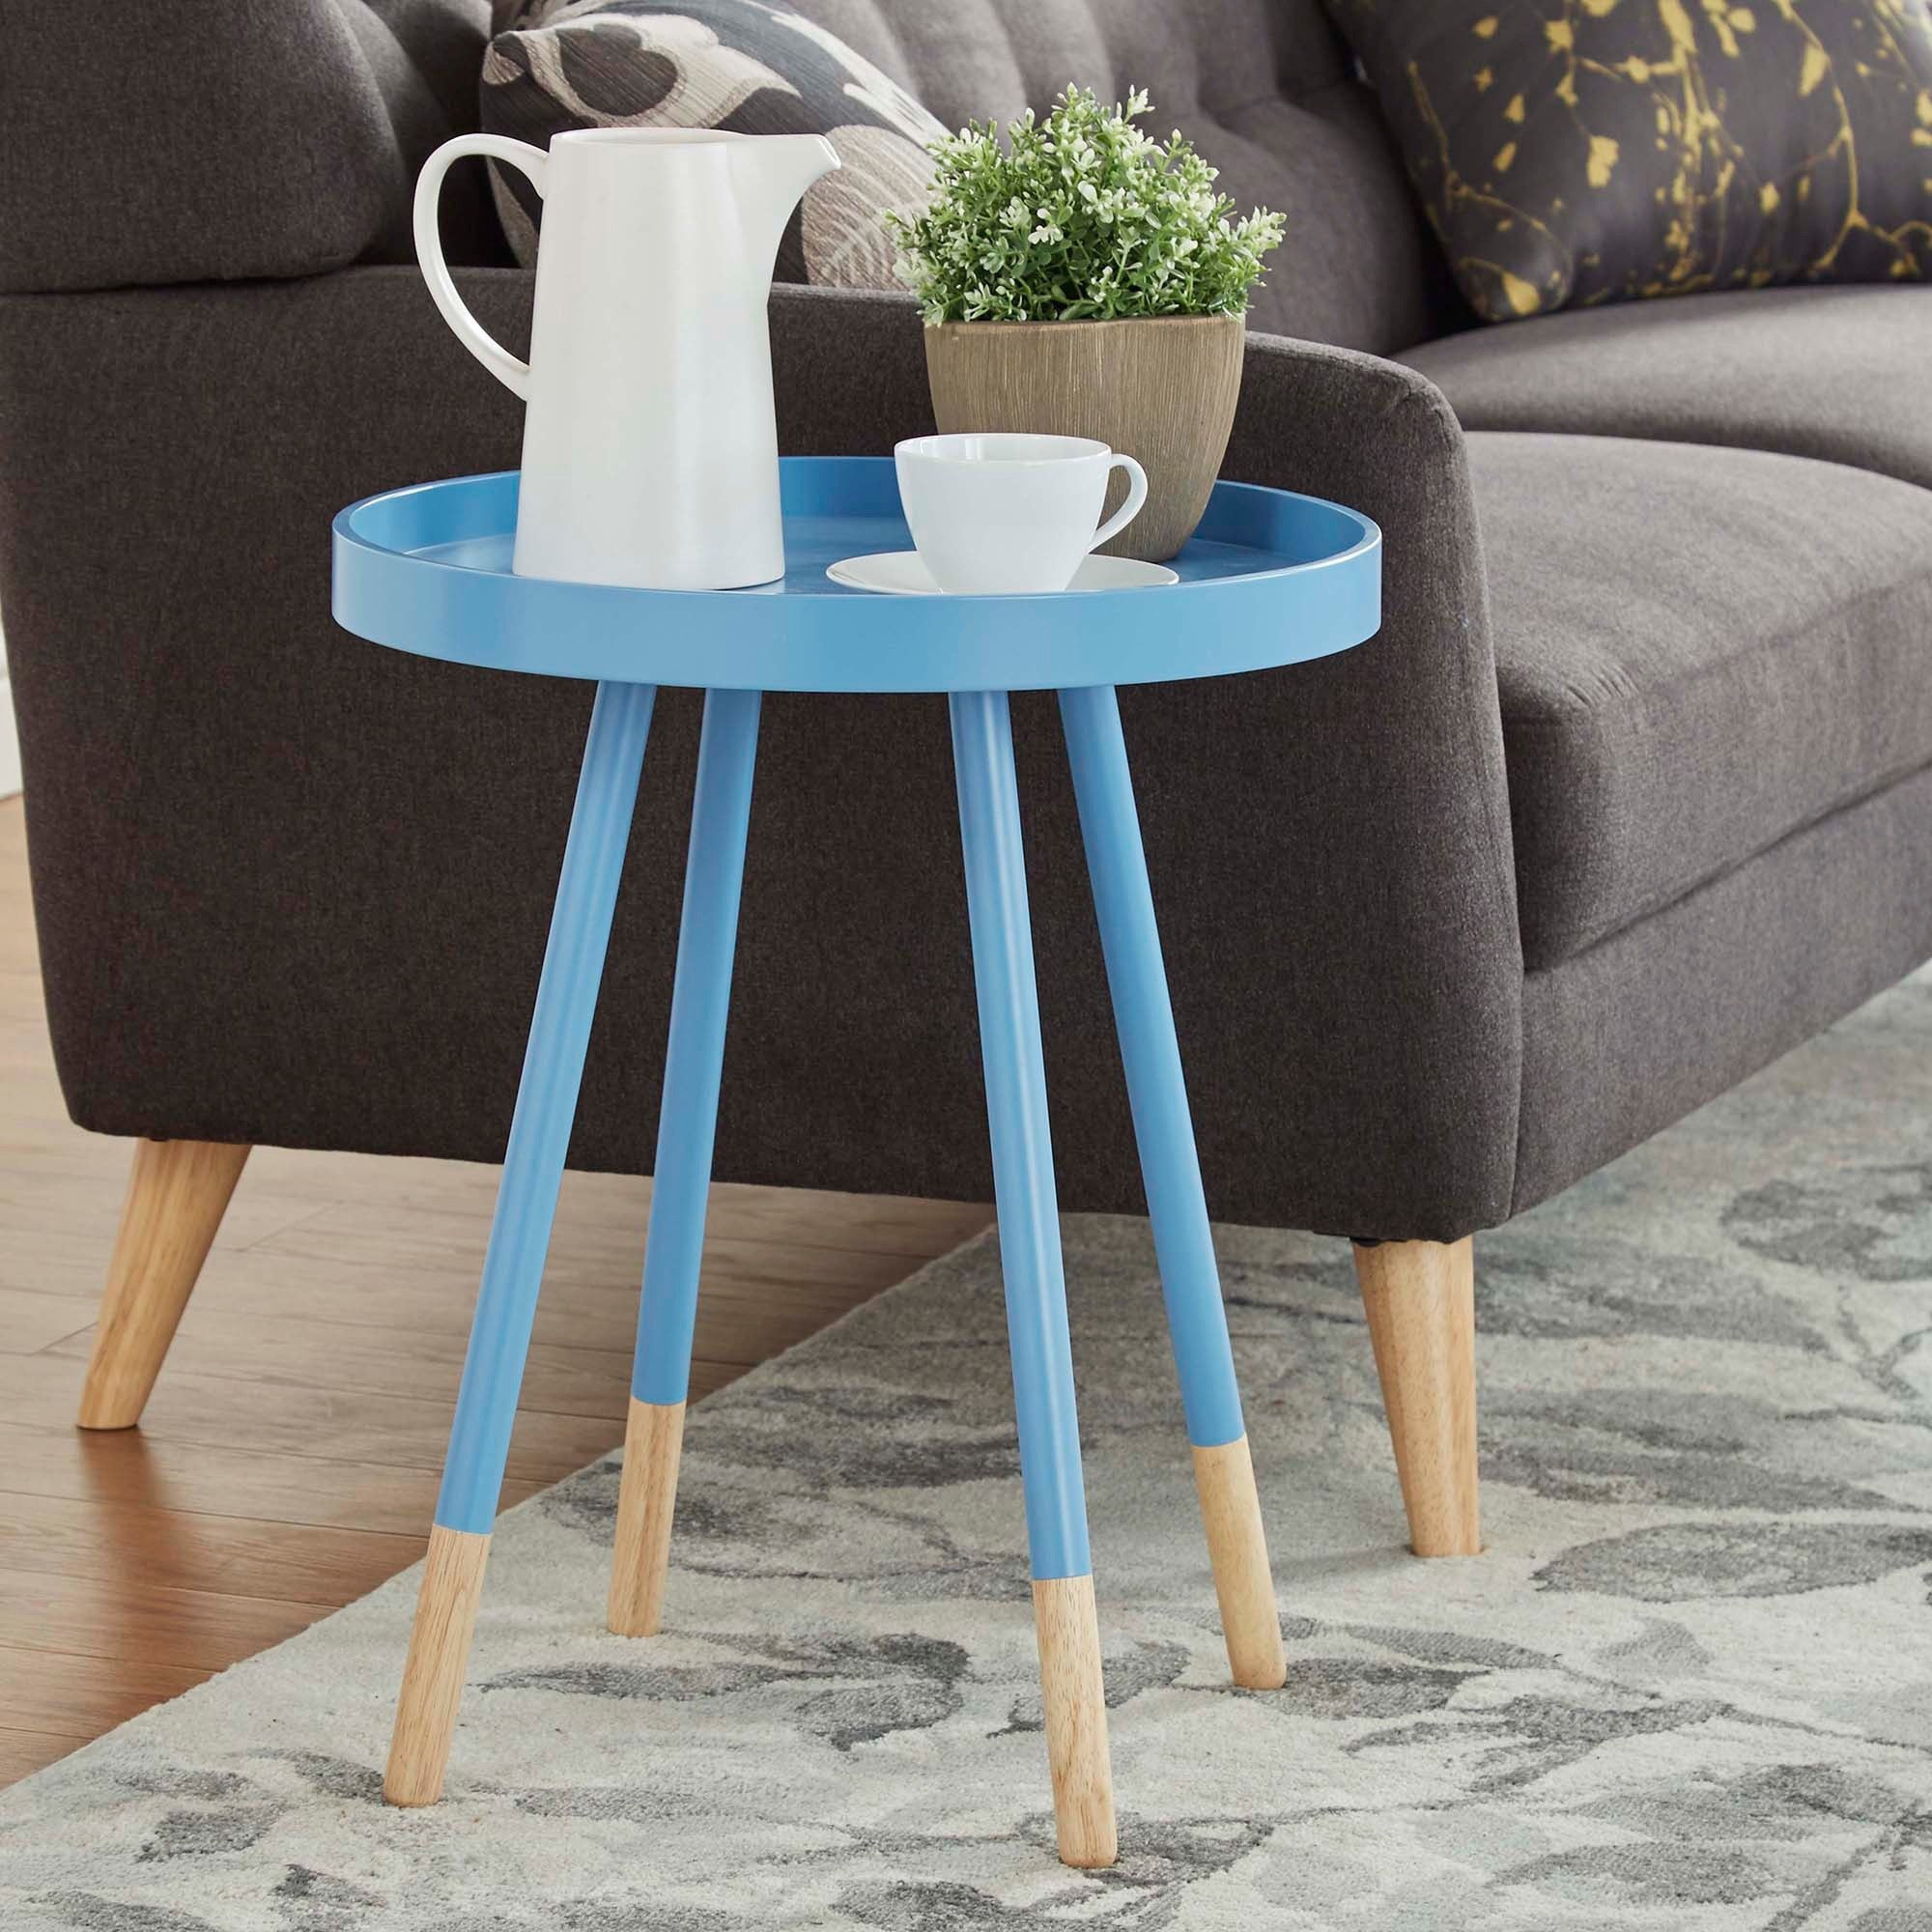 Shop Marcella Paint-dipped Round Spindle Tray-top Side Table iNSPIRE ...